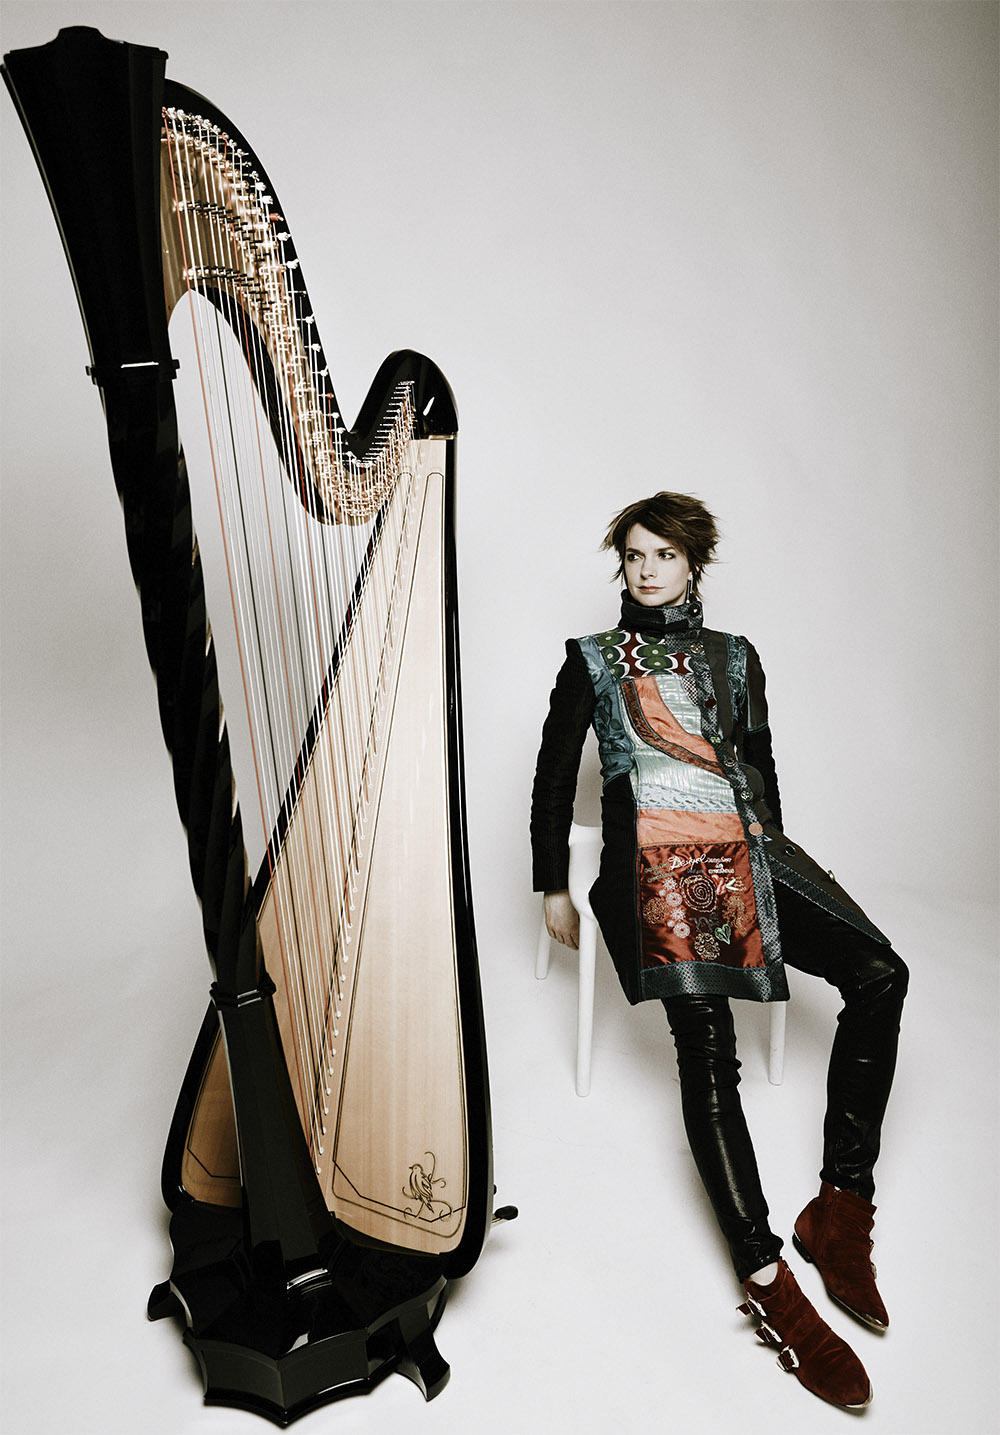 Welsh Harpist Catrin Finch